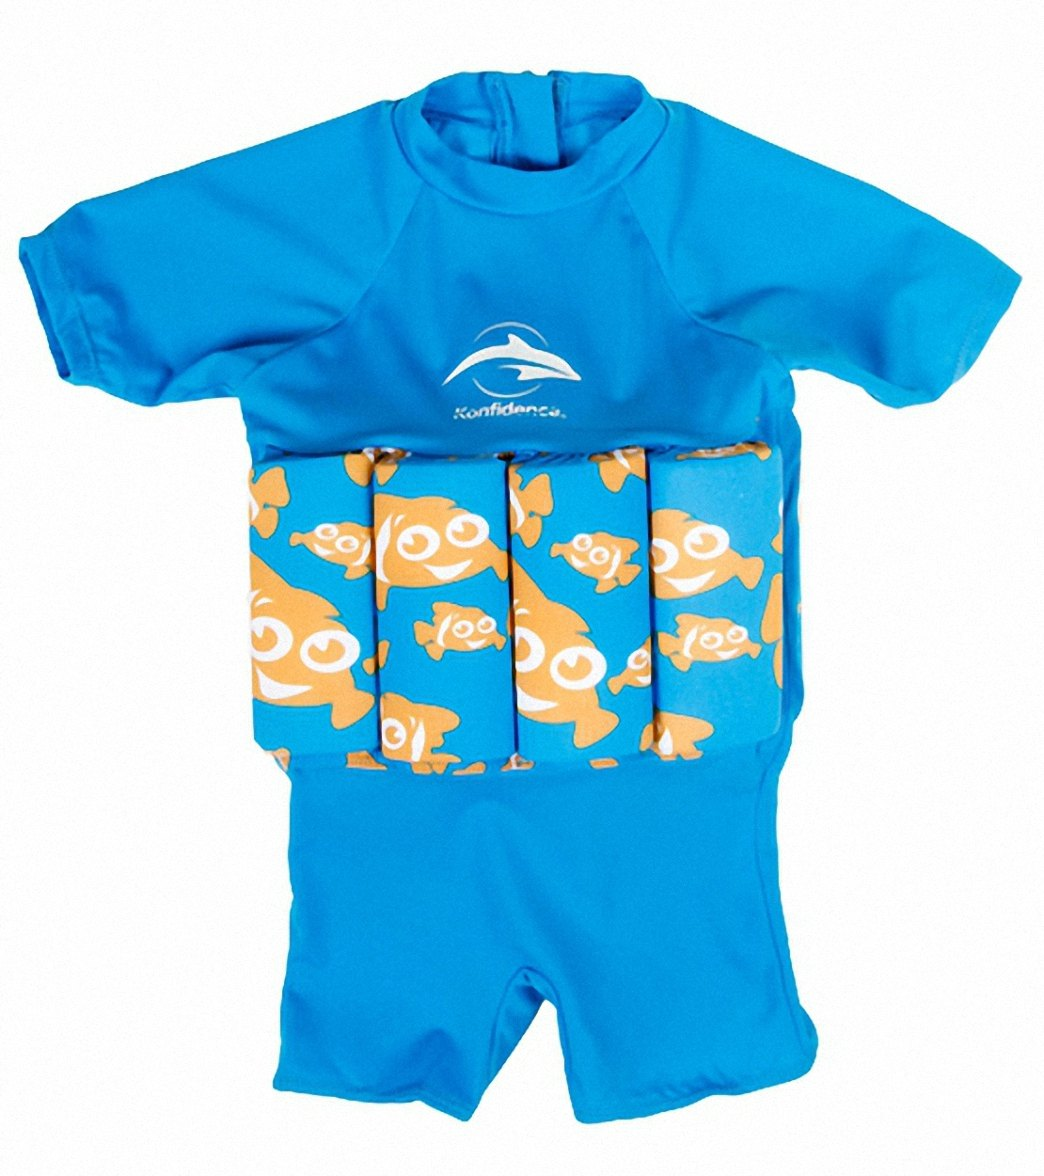 be9b24bace Konfidence Clownfish Floatsuit (1-5 Years) at SwimOutlet.com